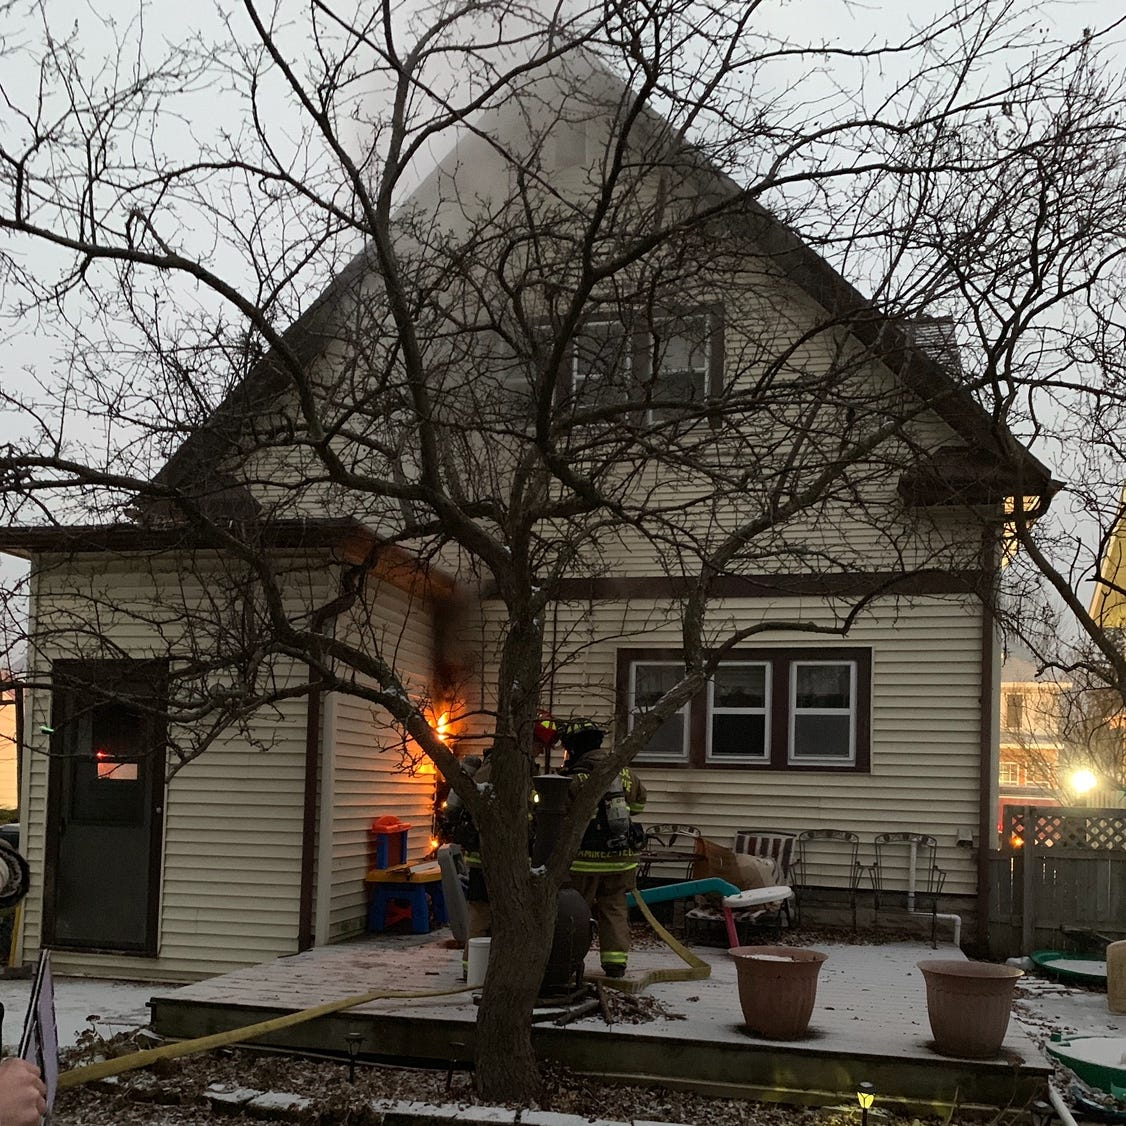 Electrical fire sparks flames on Fond du Lac home's exterior